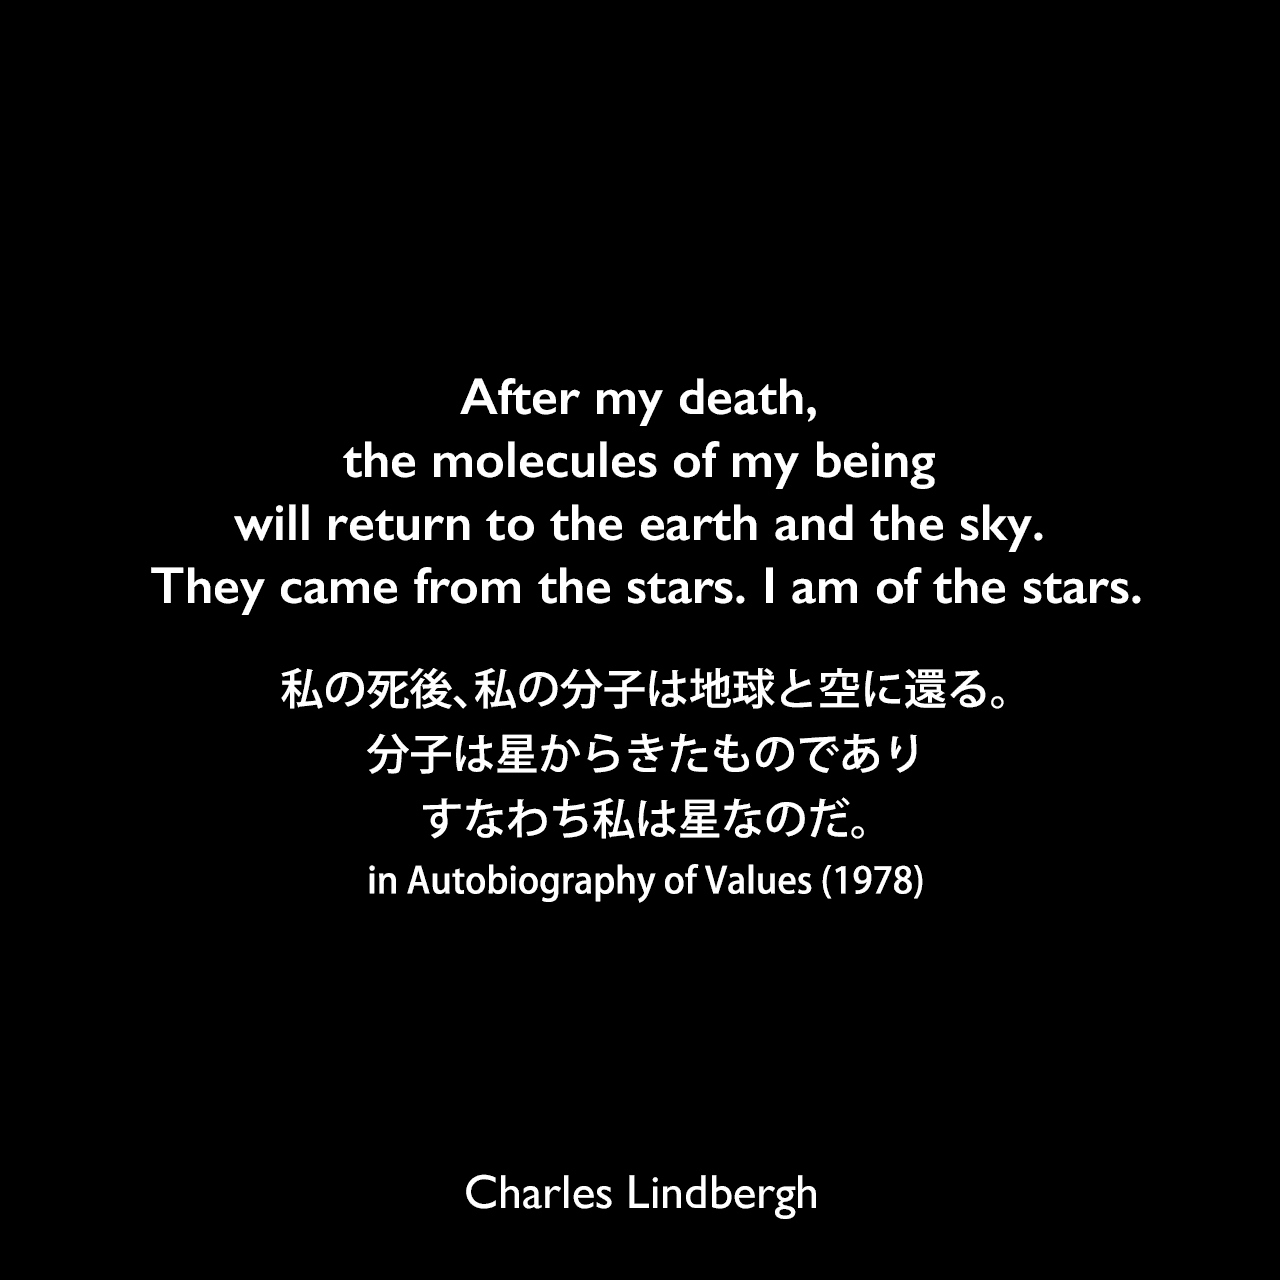 After my death, the molecules of my being will return to the earth and the sky. They came from the stars. I am of the stars.私の死後、私の分子は地球と空に還る。分子は星からきたものであり、すなわち私は星なのだ。(in Autobiography of Values [1978])Charles Lindbergh